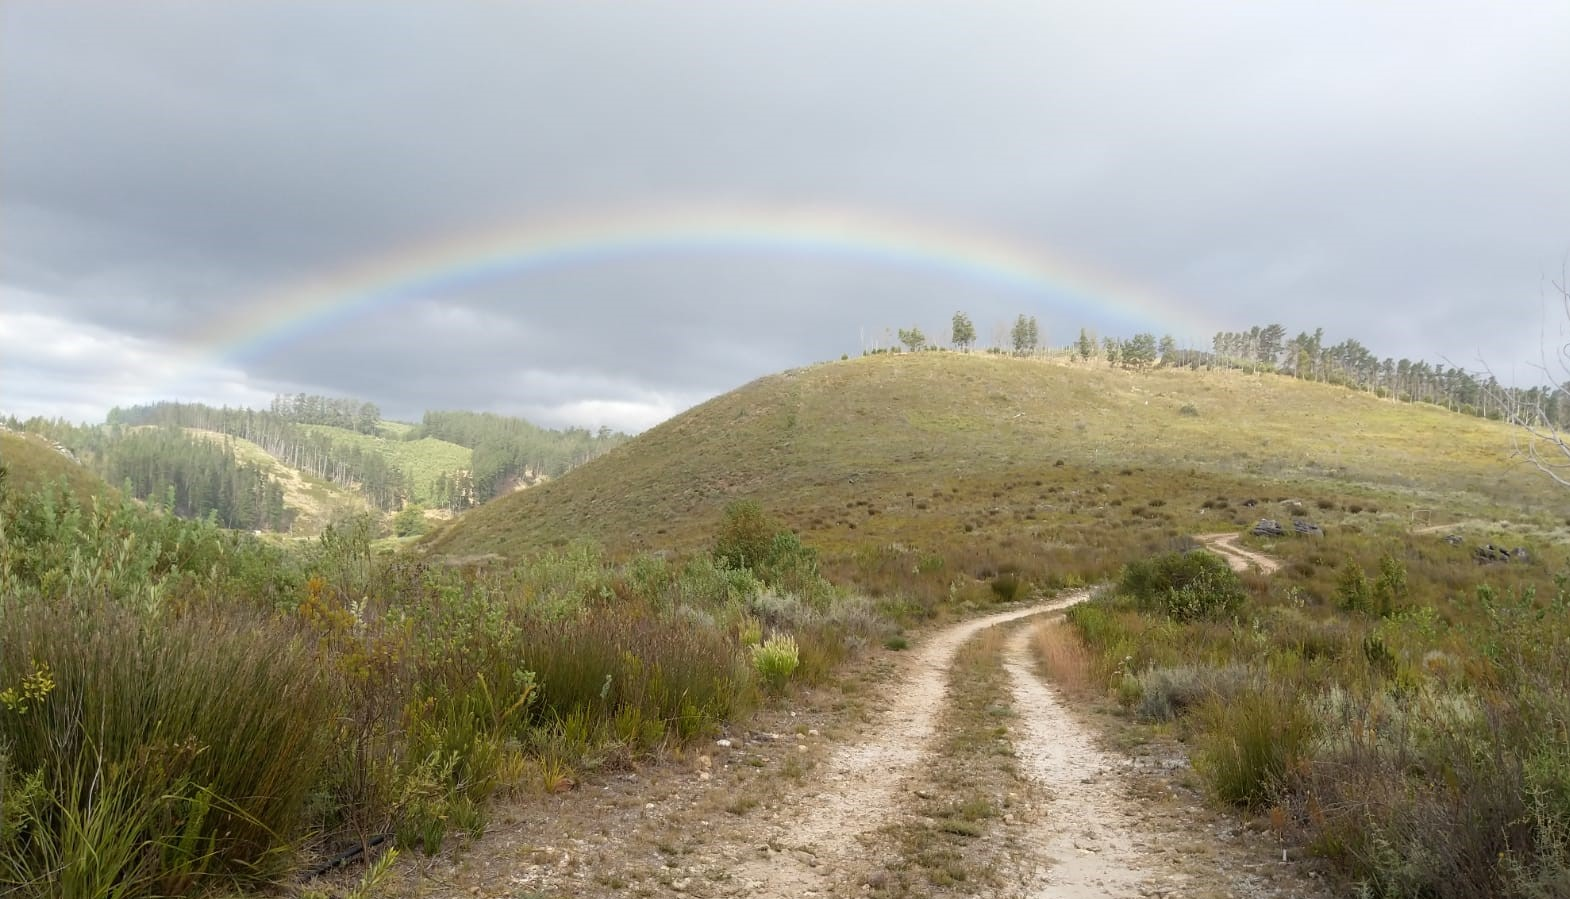 dirt road disappearing into natural fynbos with cloudy sky and faint rainbow